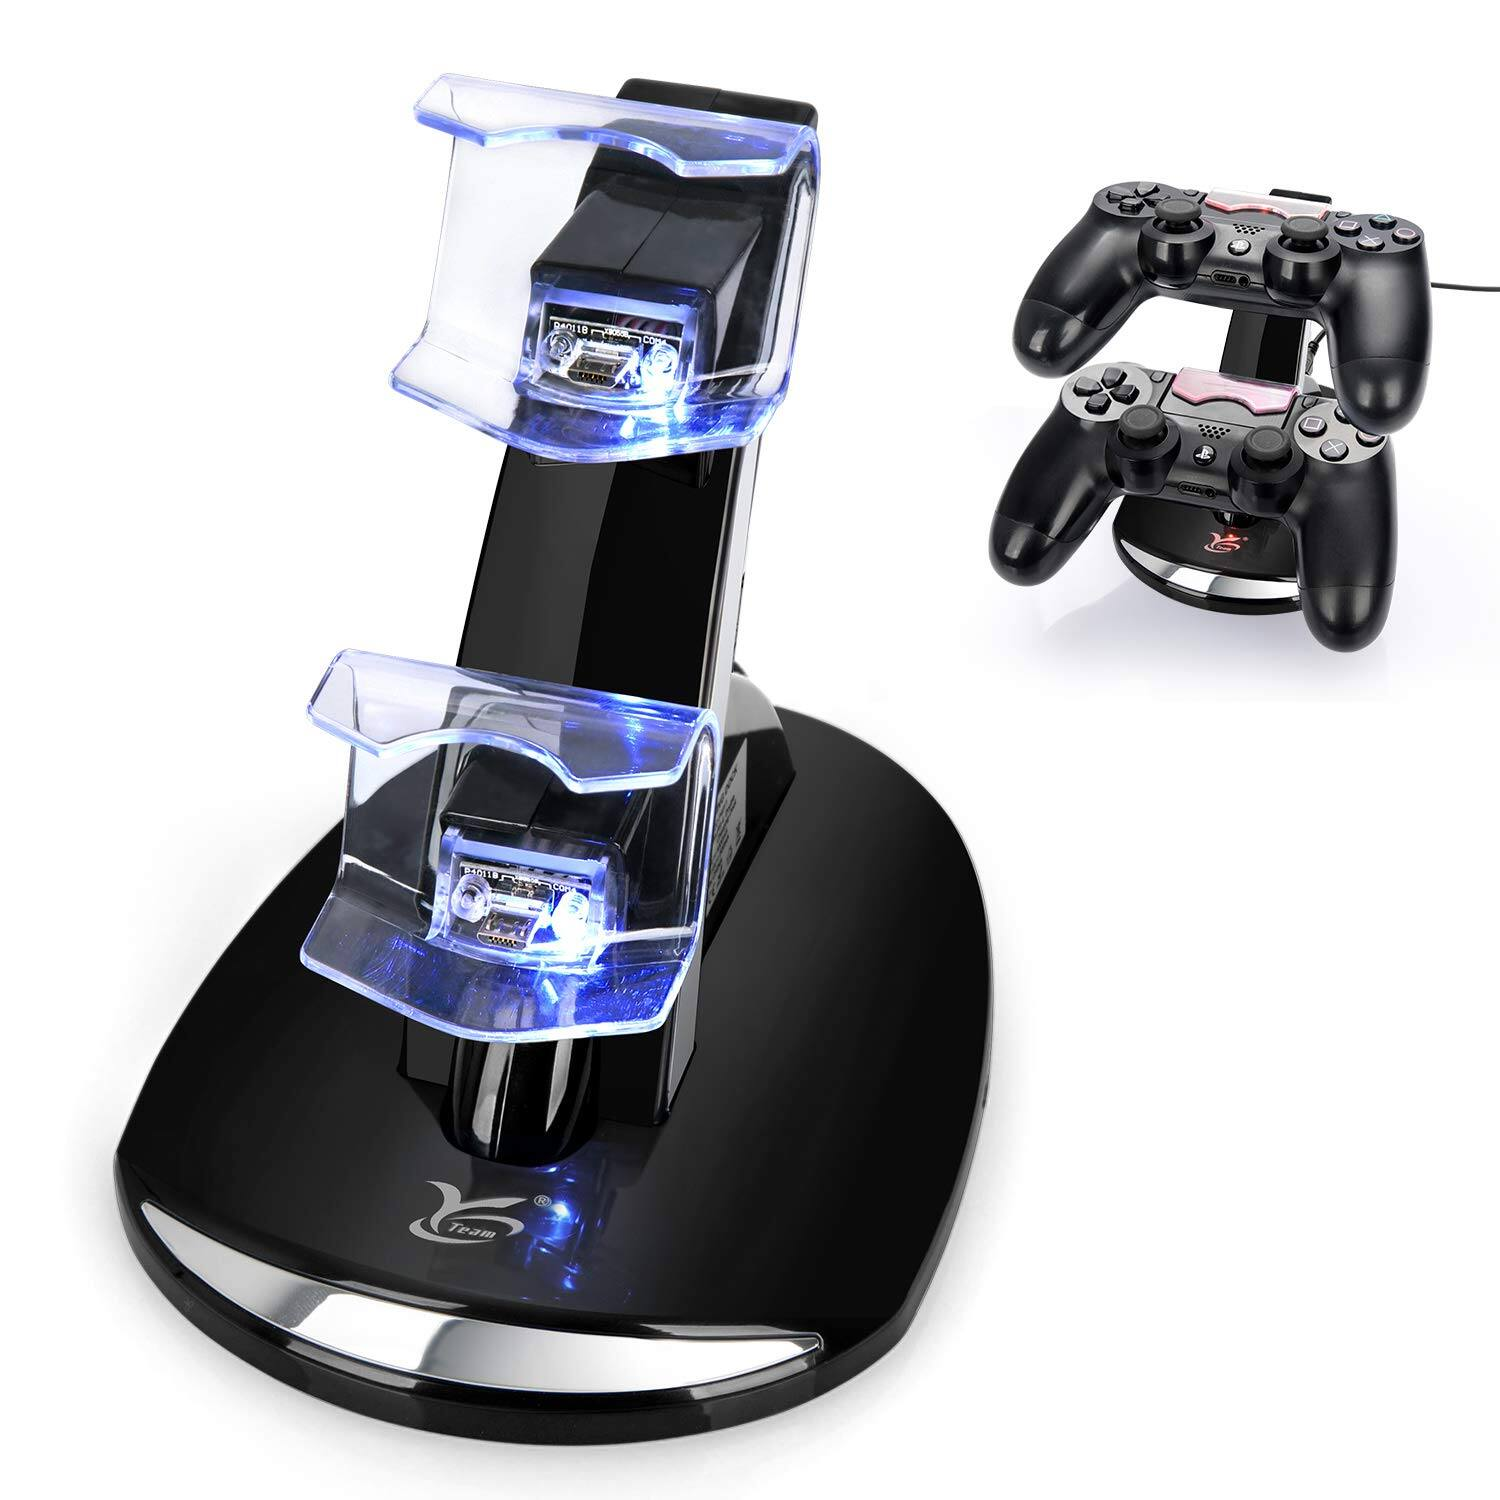 PS4 Controller Charger, Y Team Playstation 4 / PS4 / PS4 Pro / PS4 Slim Controller Charger Charging Docking Station Stand for $6.99@amazon